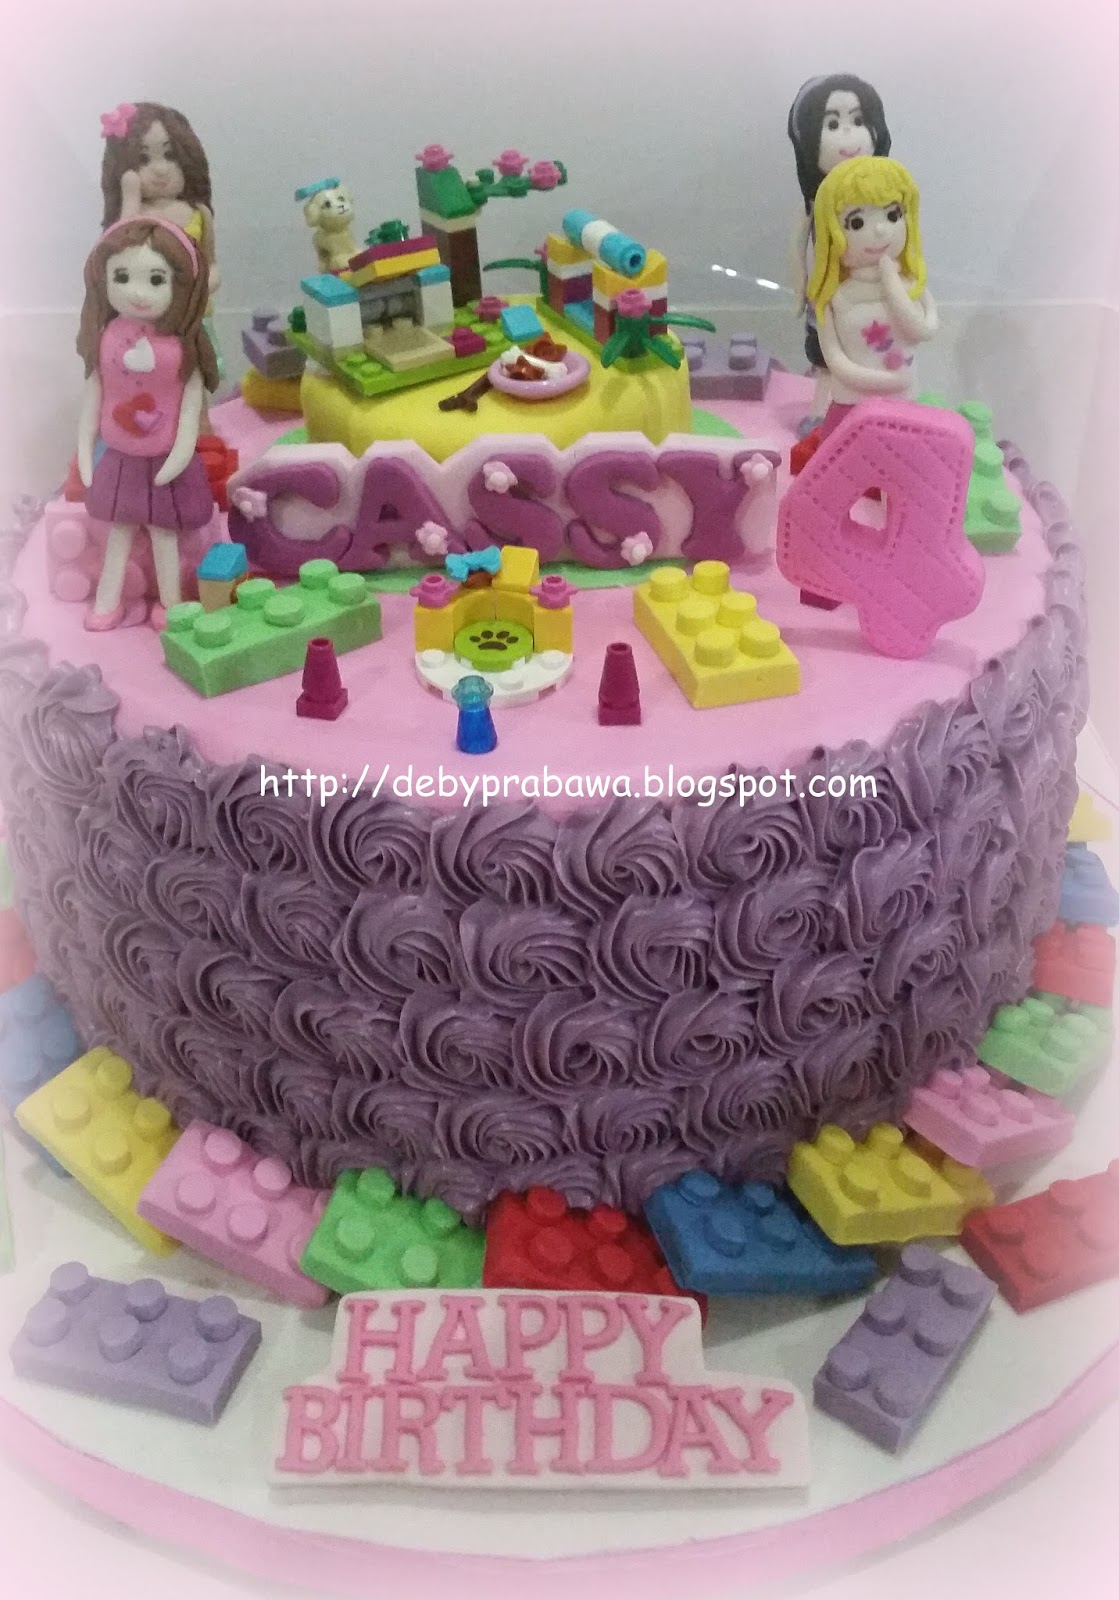 Cake Images For Friends : Butterfly Cake: Lego Friends Cake